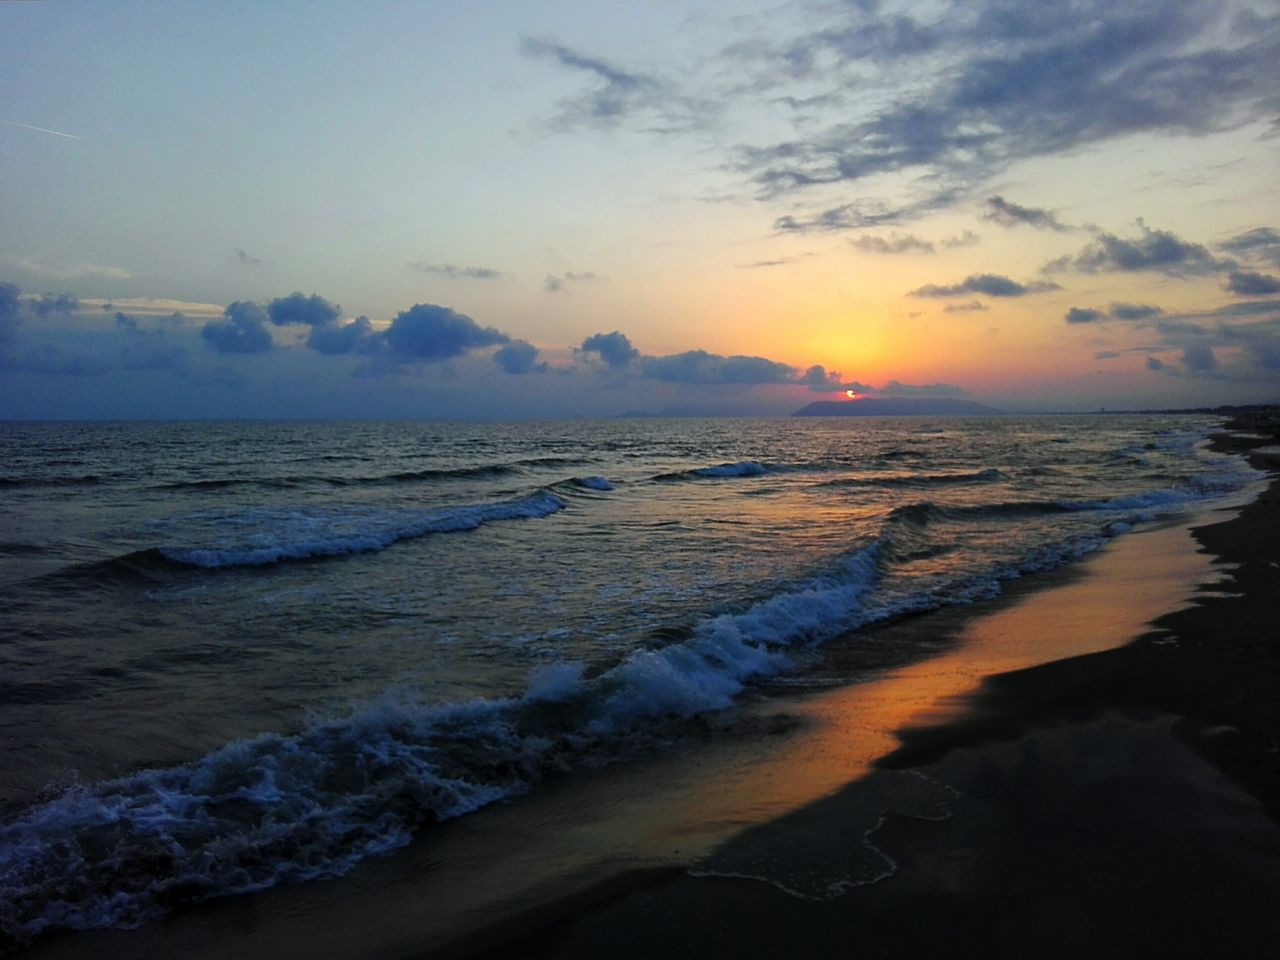 sea, sunset, beauty in nature, wave, beach, water, sky, nature, scenics, surf, tranquil scene, horizon over water, shore, tranquility, cloud - sky, sand, no people, outdoors, idyllic, tide, power in nature, travel destinations, vacations, day